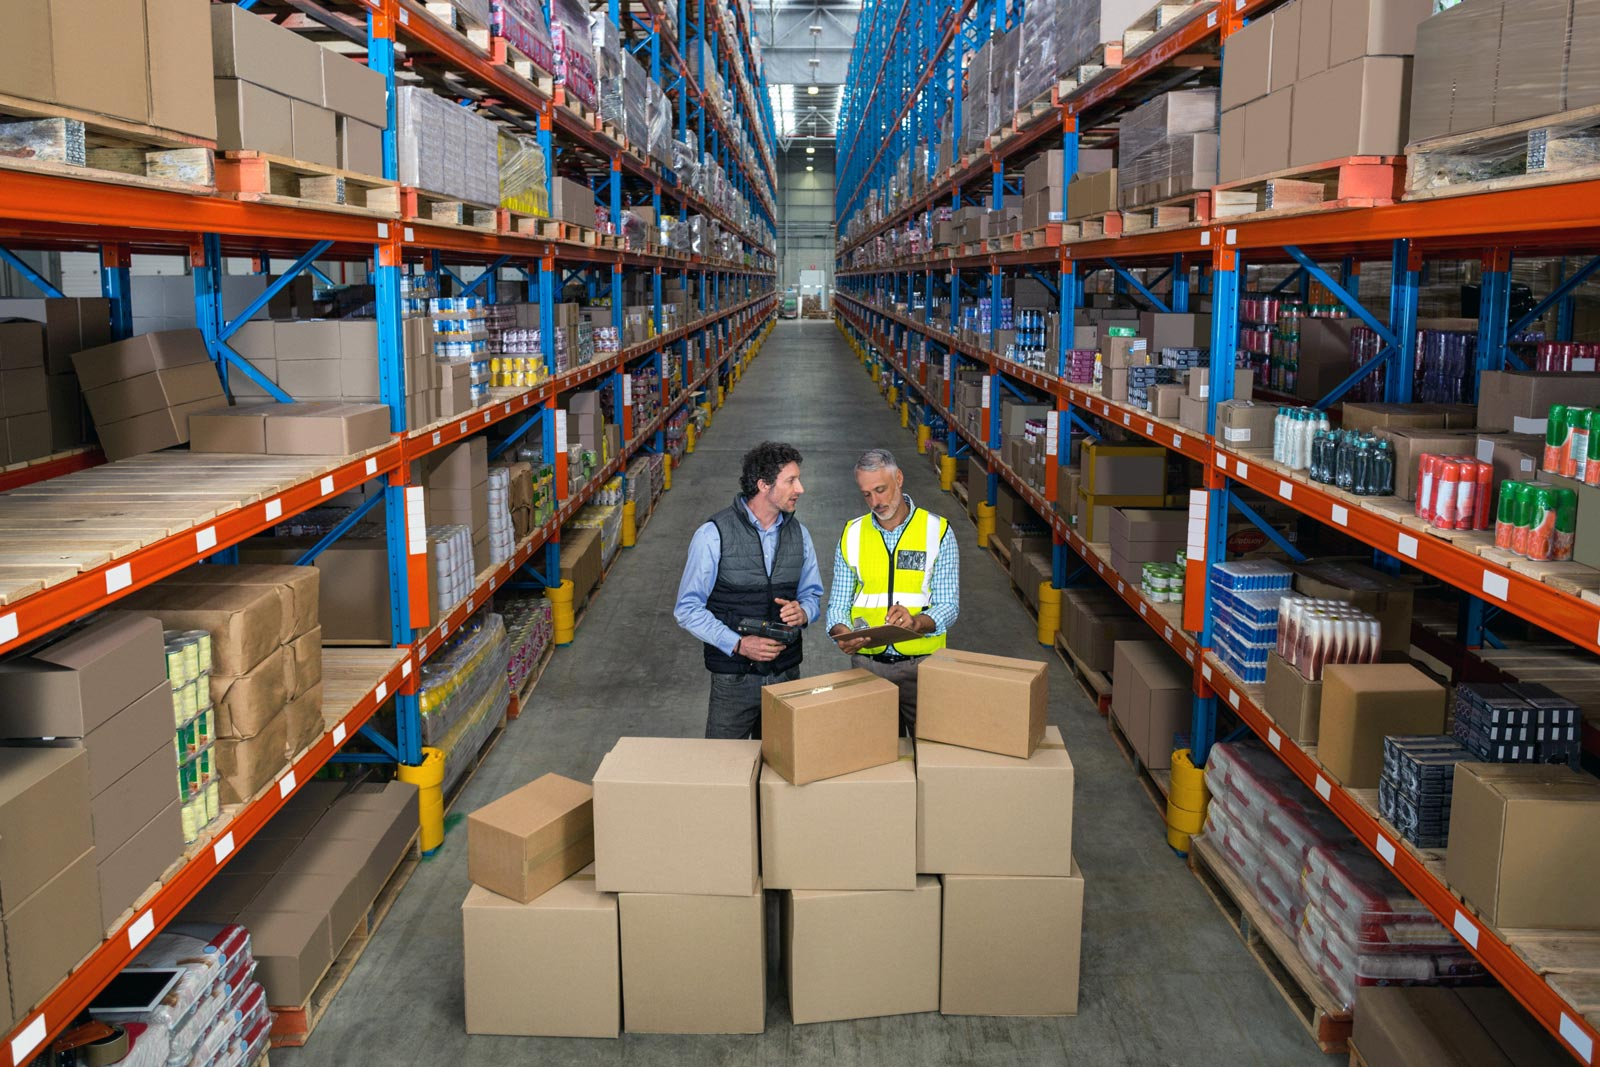 Guide for SMEs inventory management [INFOGRAPHIC]